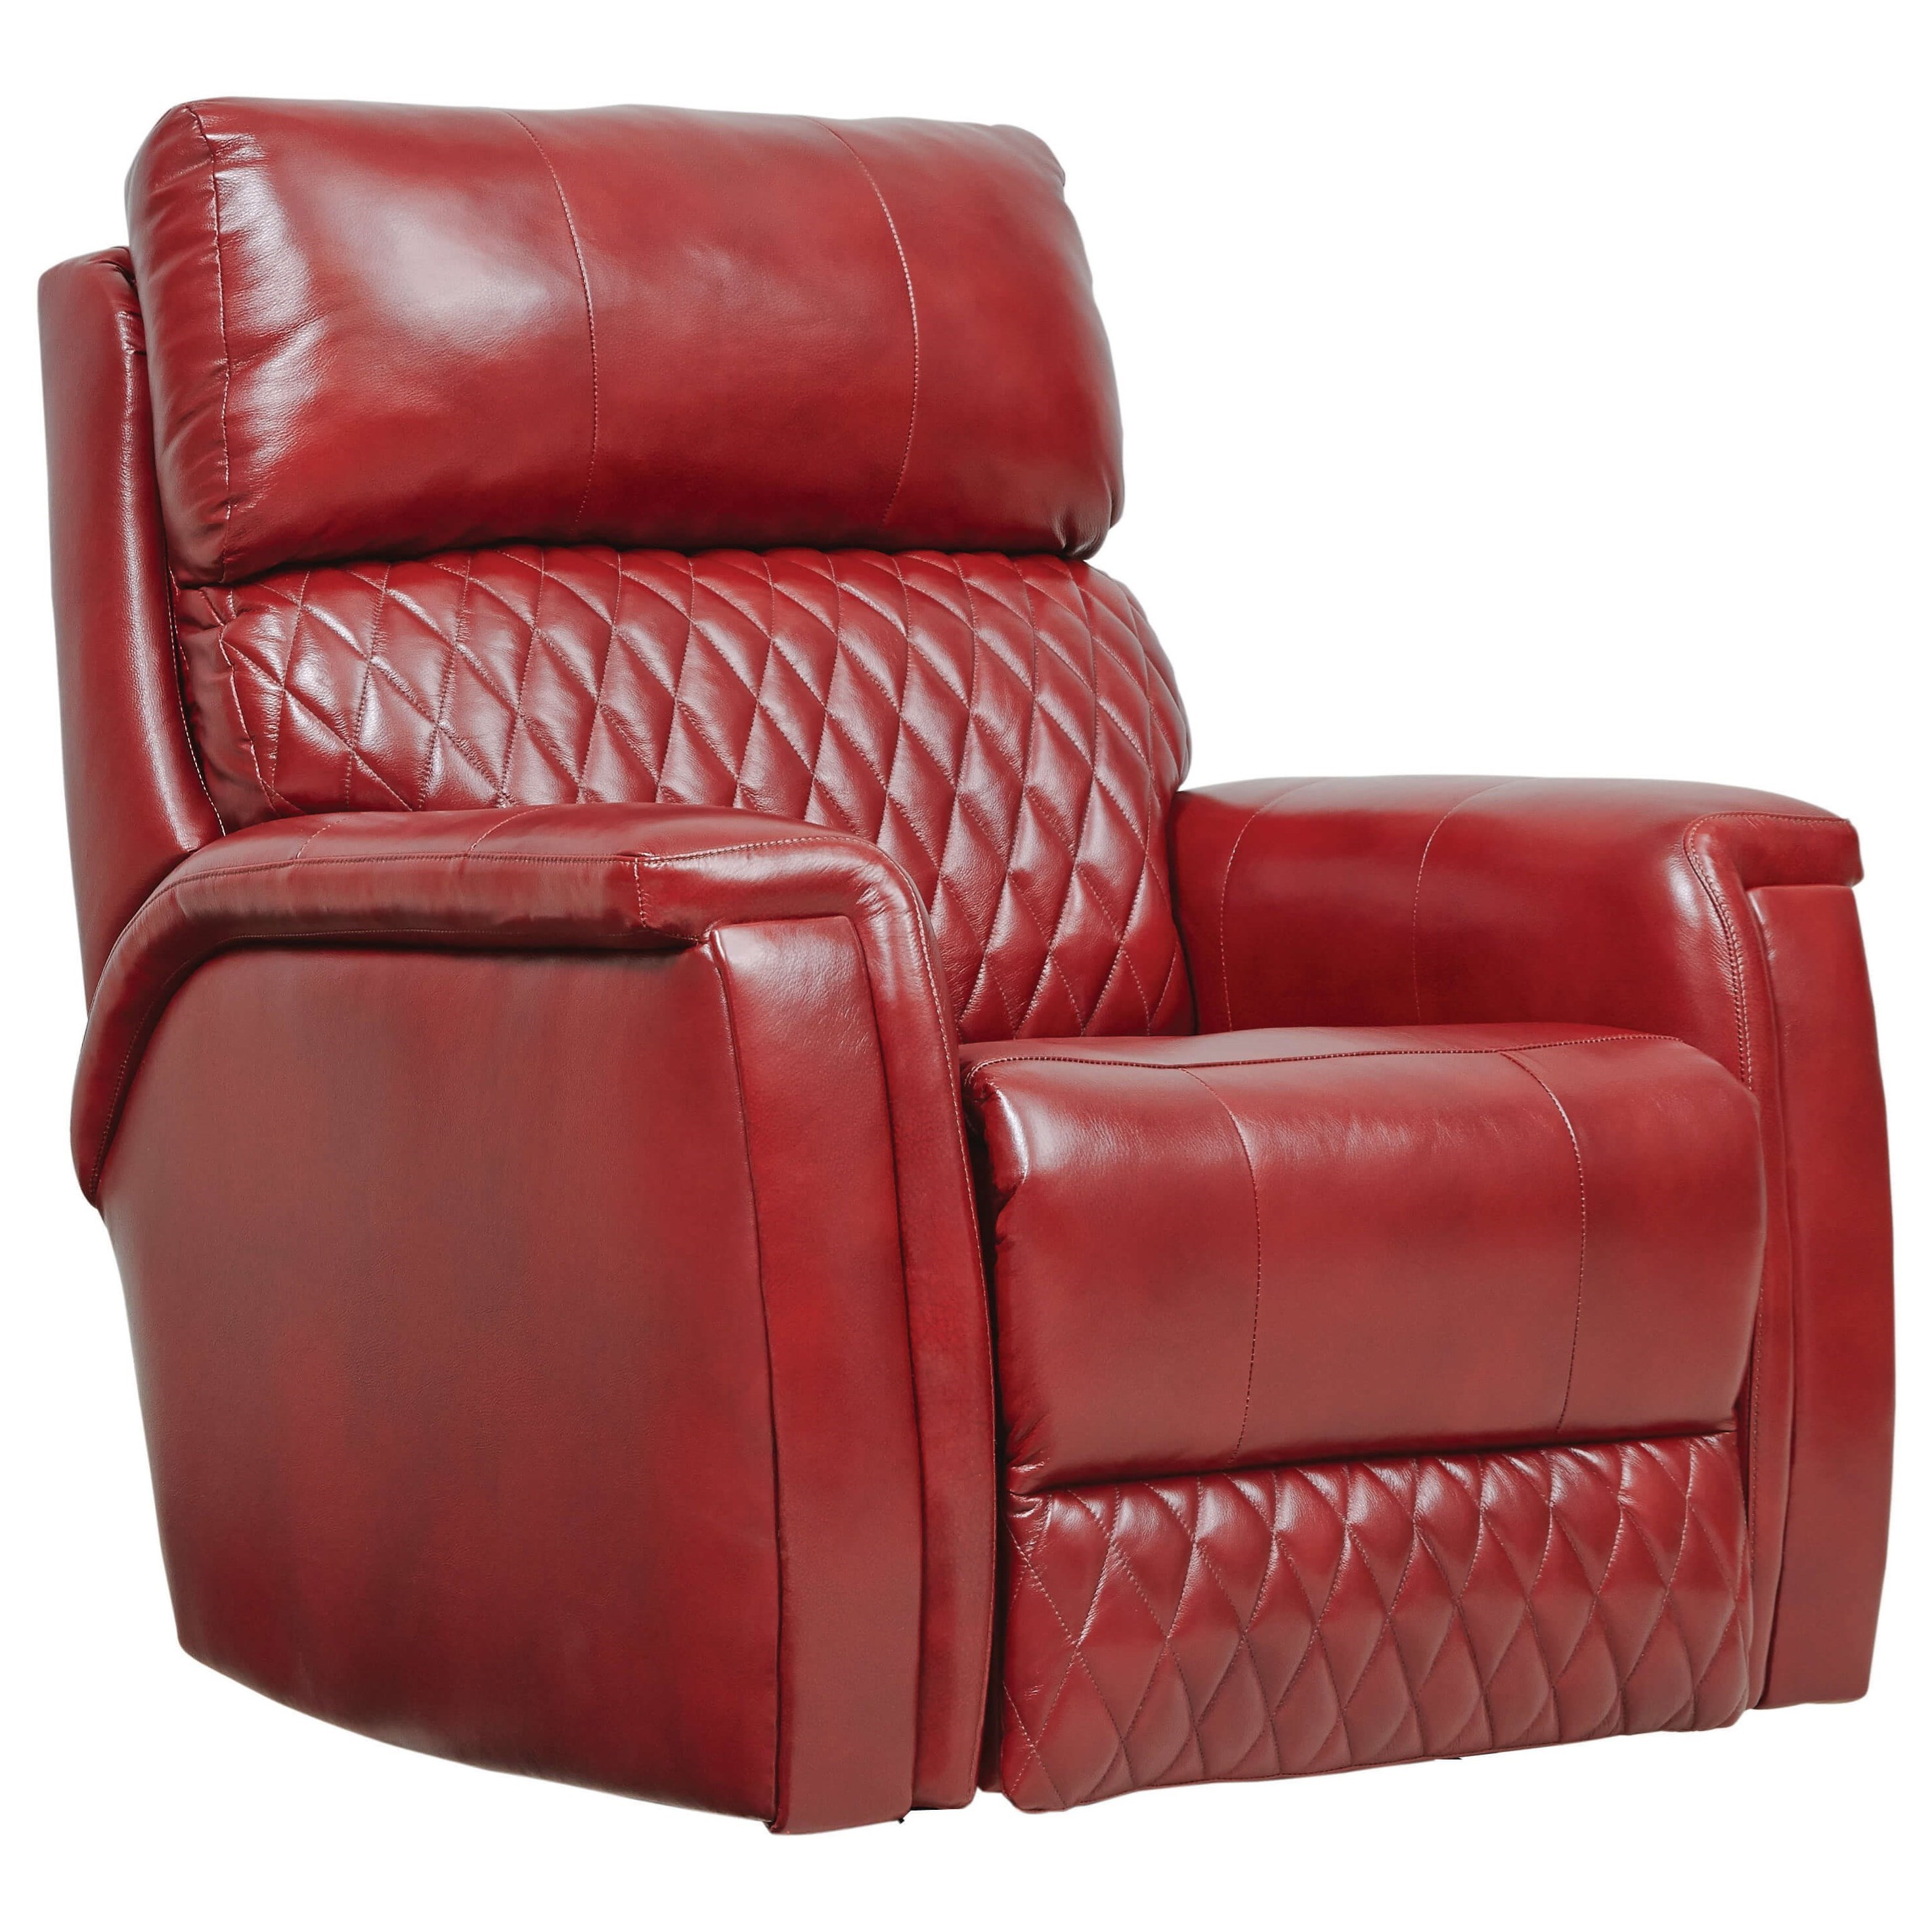 High Rise Power Headrest Wallhugger Recliner w/ SoCozi by Southern Motion at Powell's Furniture and Mattress